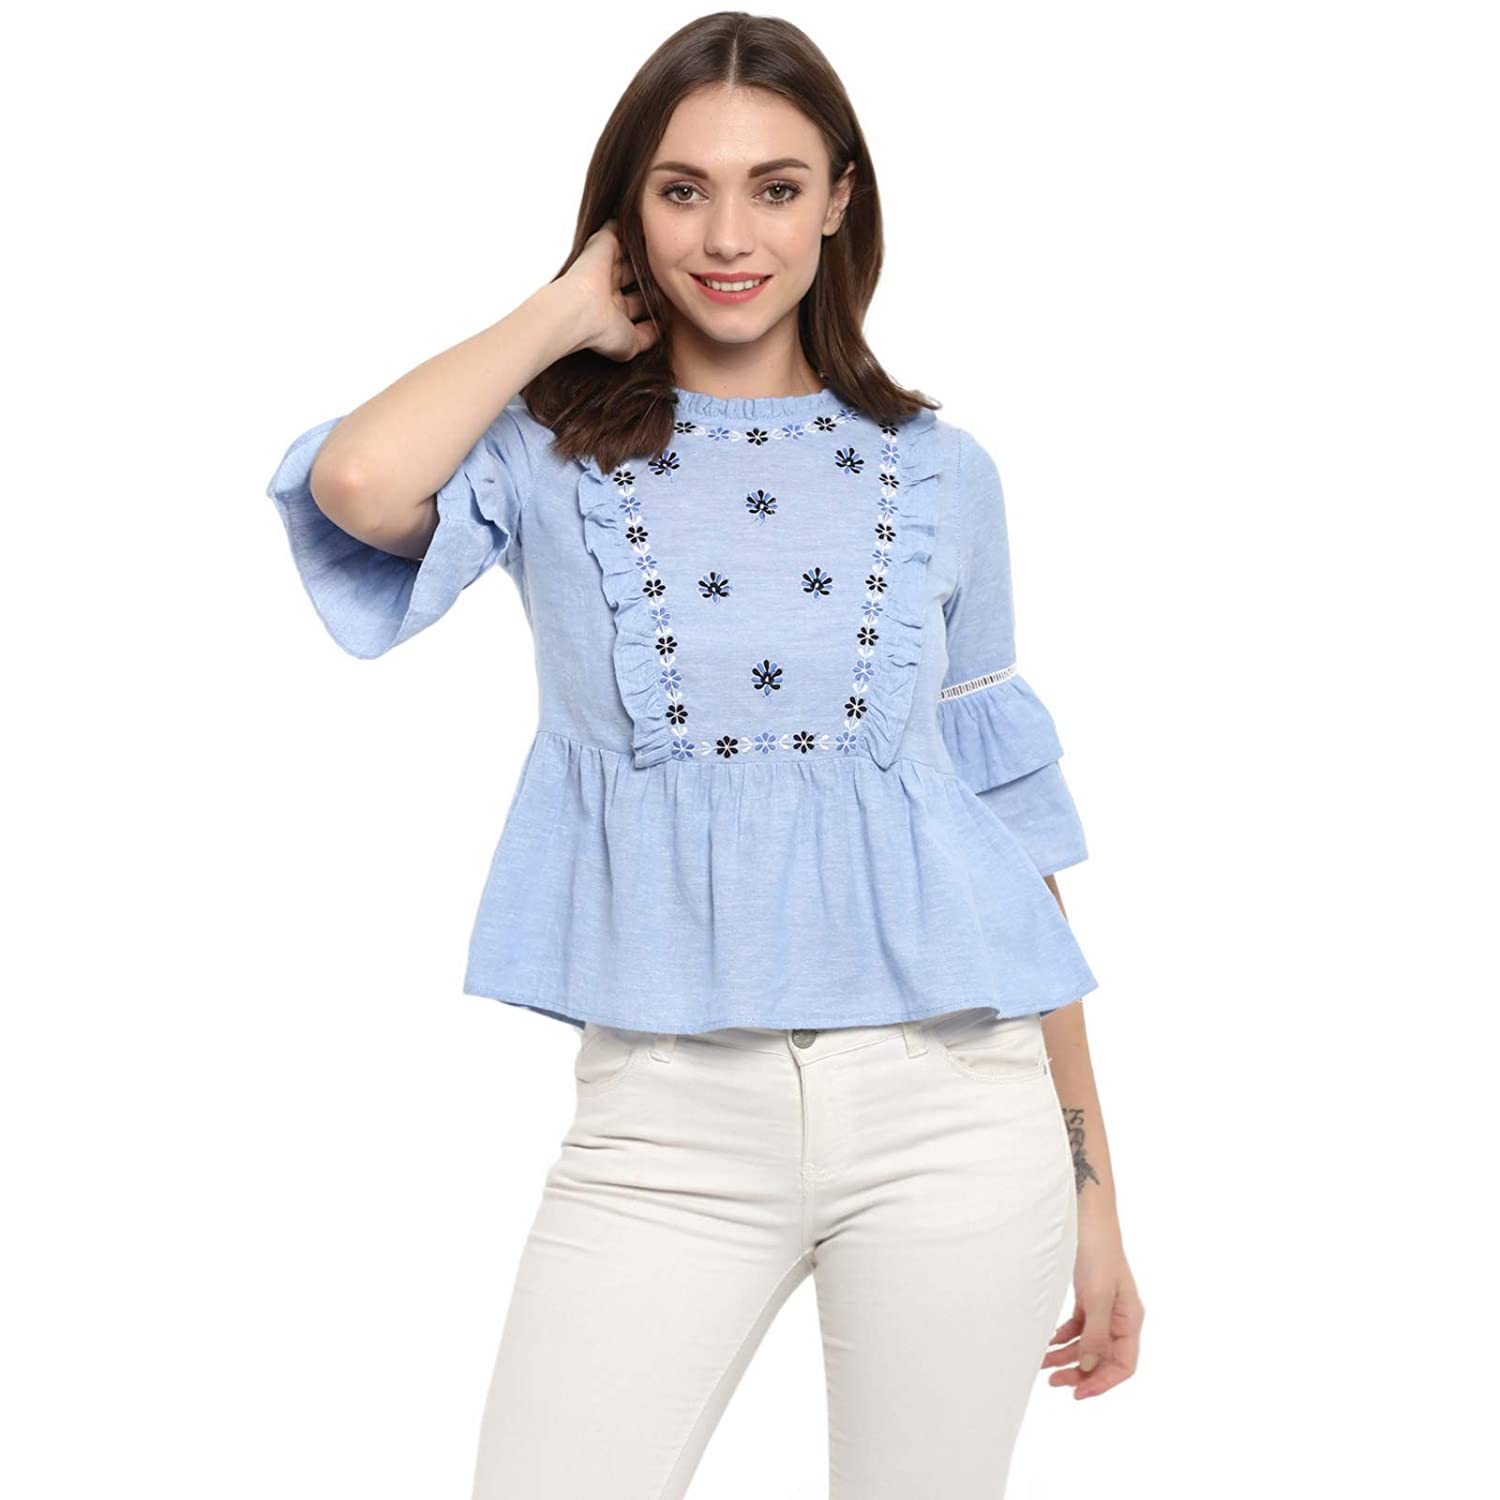 950fae7684e Spotstyl Blue Floral Cotton Embroidered Casual Tops for Women Western  Casual Latest Summer 2019 Women Tops Western Tops for Women Styish Fancy  Women Apparel ...